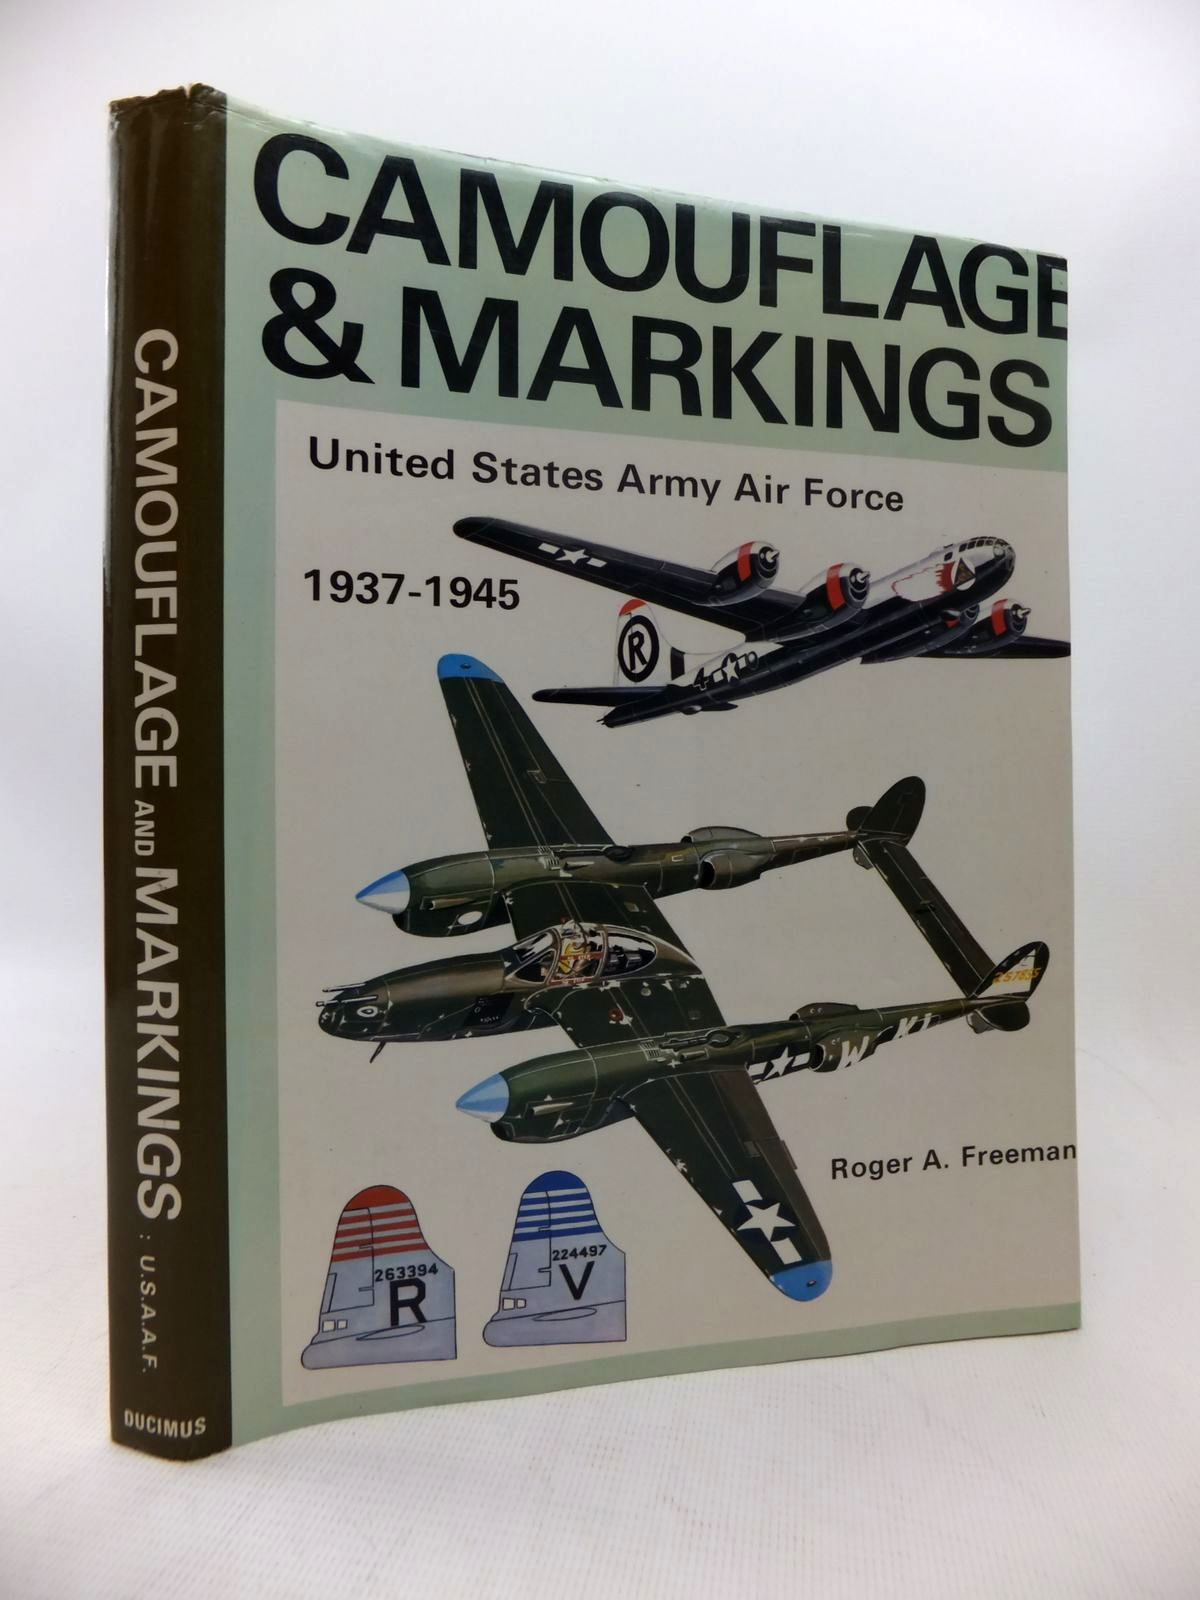 Photo of CAMOUFLAGE & MARKINGS UNITED STATES ARMY AIR FORCE written by Freeman, Roger A. published by Ducimus Books (STOCK CODE: 1814223)  for sale by Stella & Rose's Books